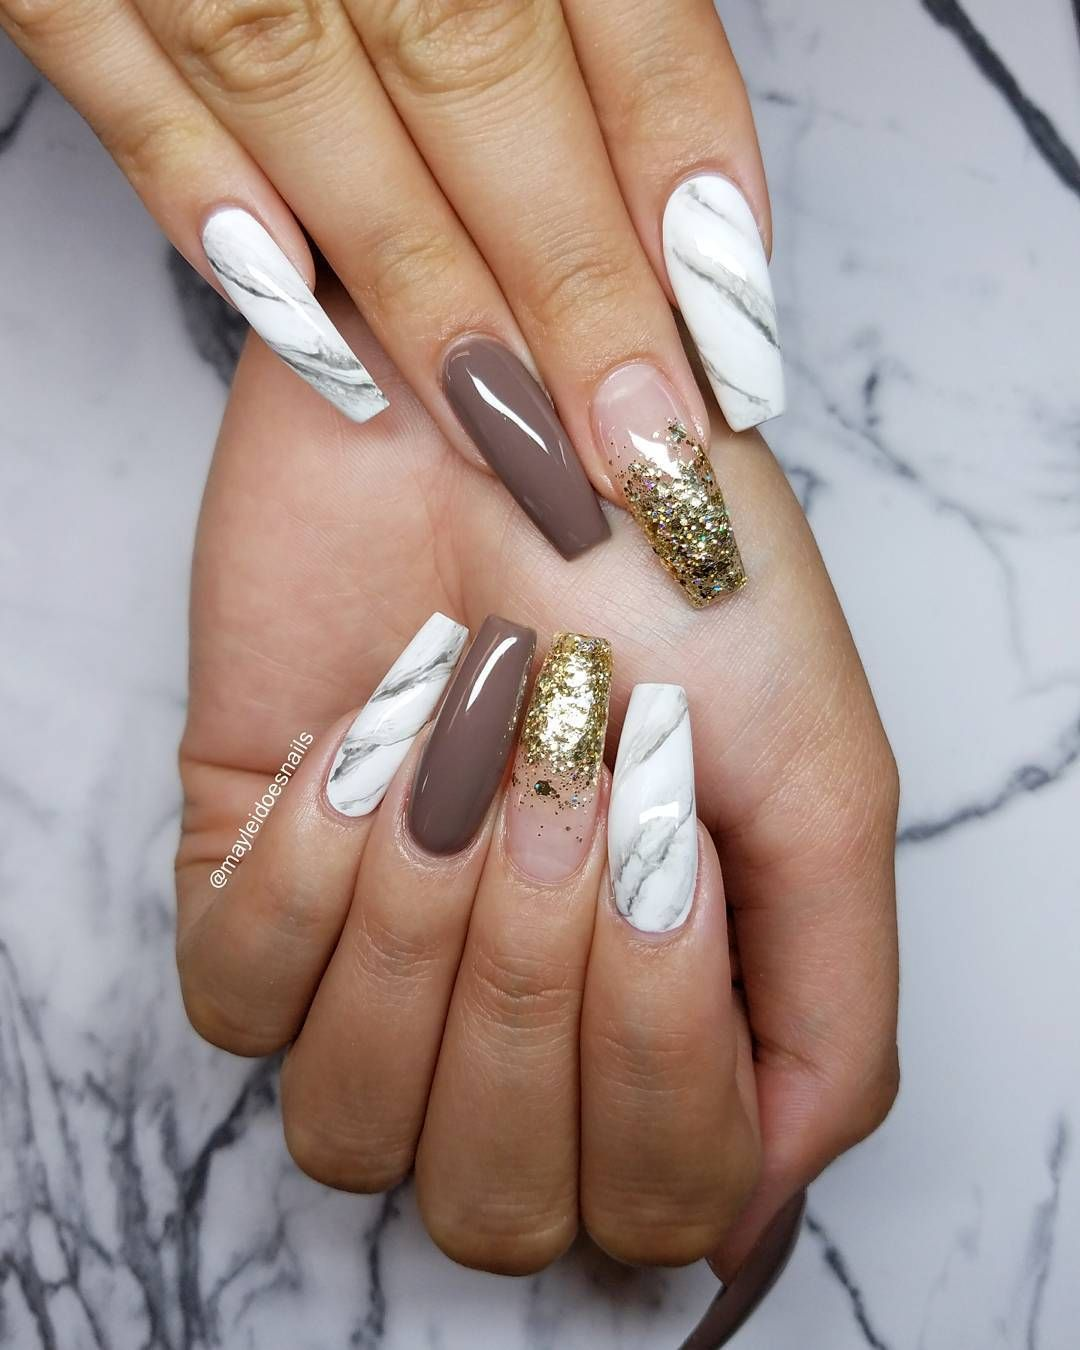 Marble, gold nails and all that jazz